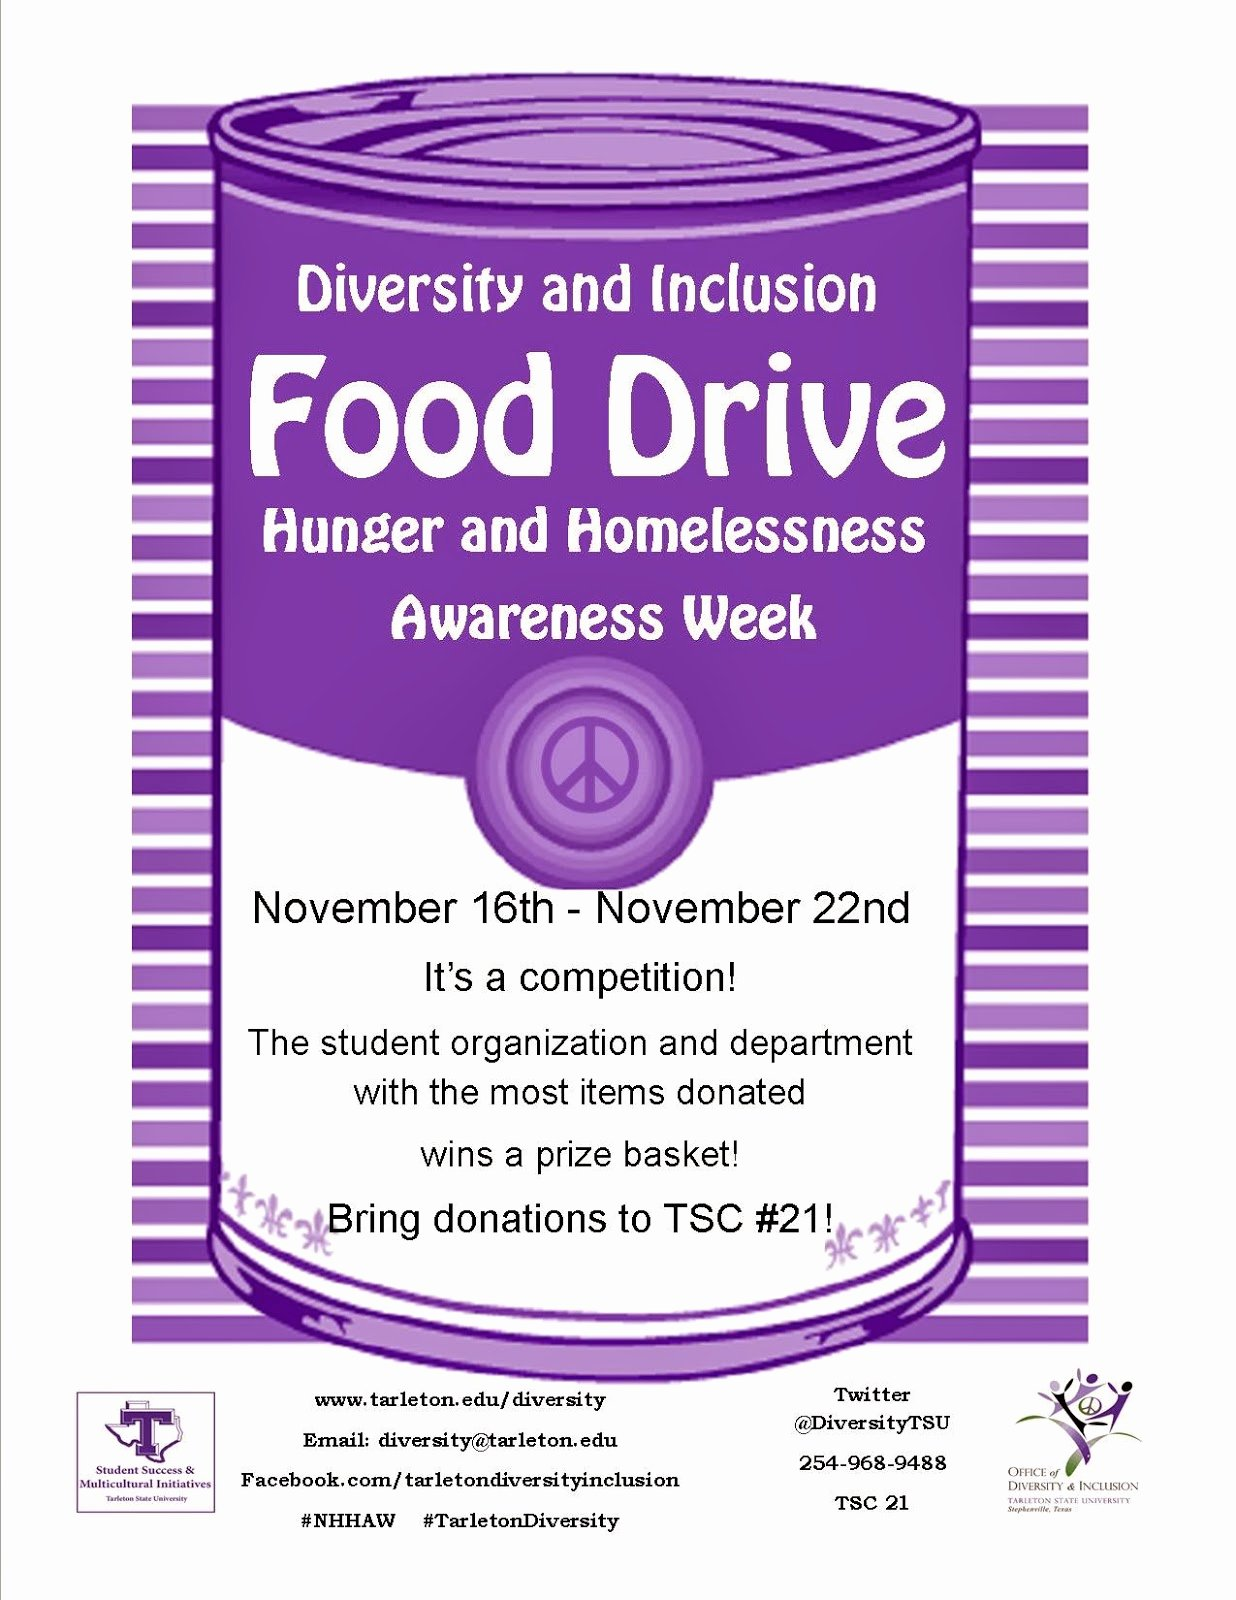 Canned Food Drive Flyer Template Beautiful Diversity and Inclusion Tarleton State University November 2013